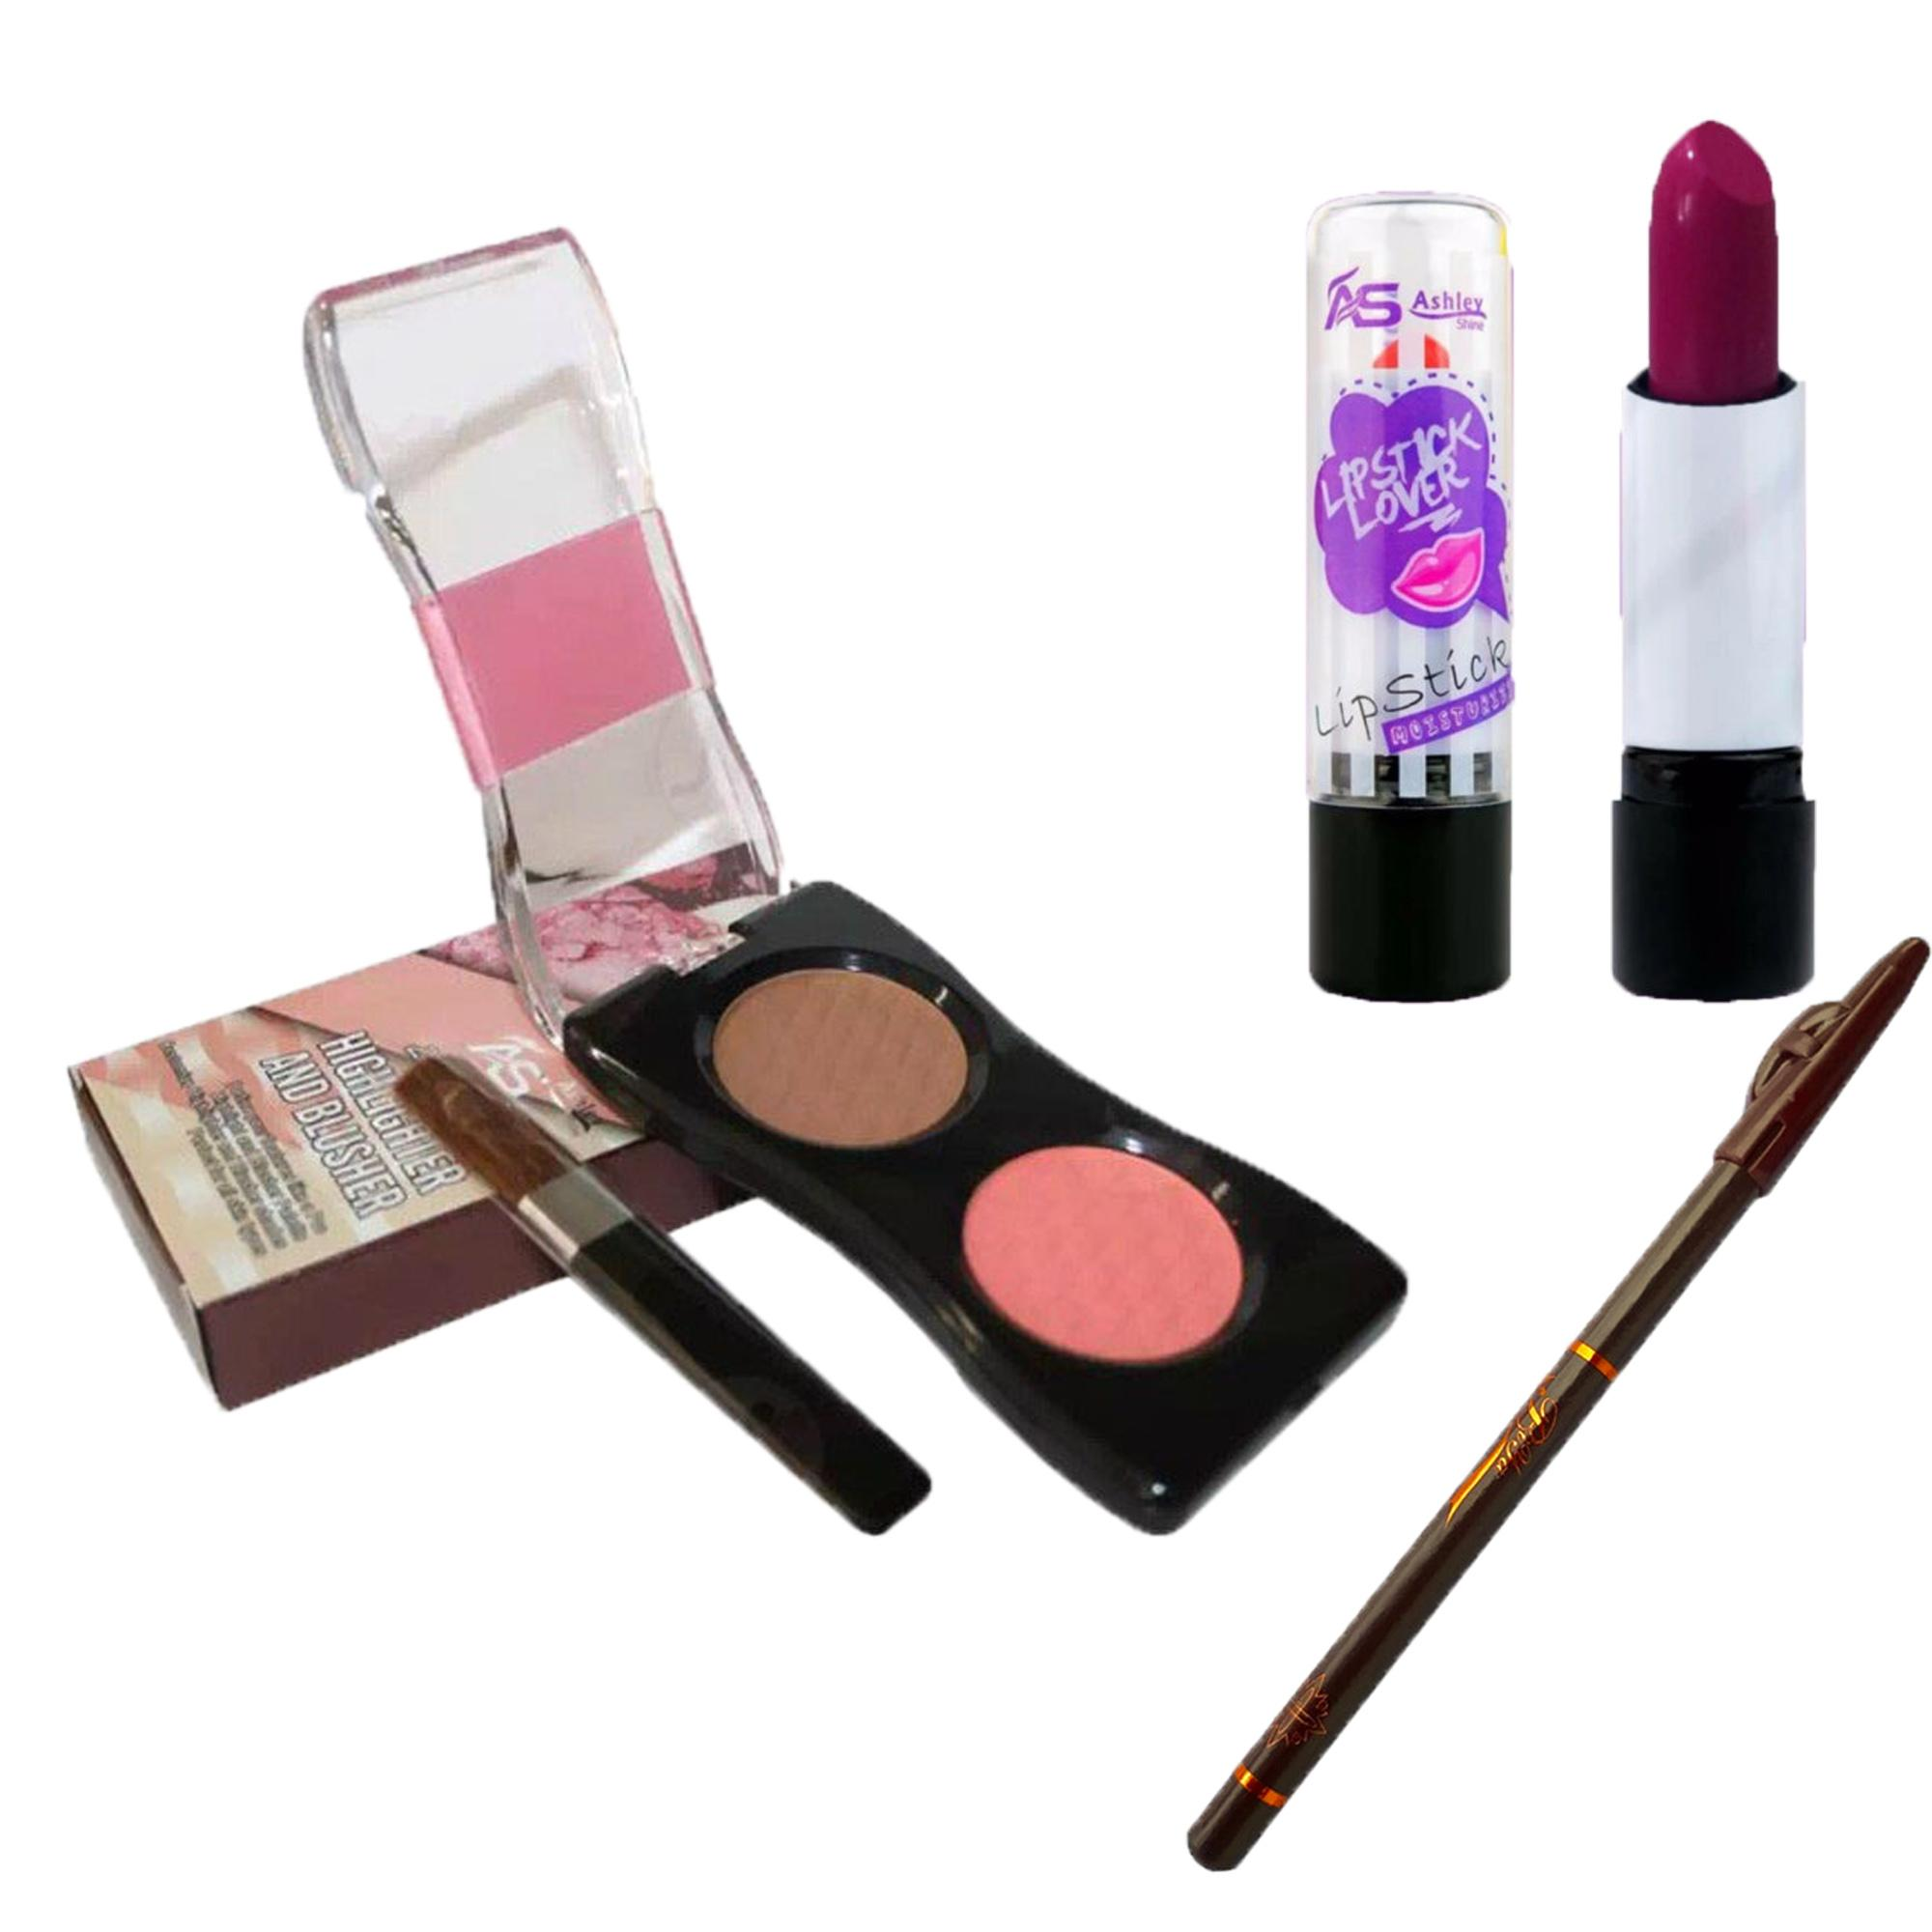 AS 2 in 1 Makeup Palette Highlighter & Blusher #01 8g + Lipstick FREE 1 Eyeliner 100g Philippines